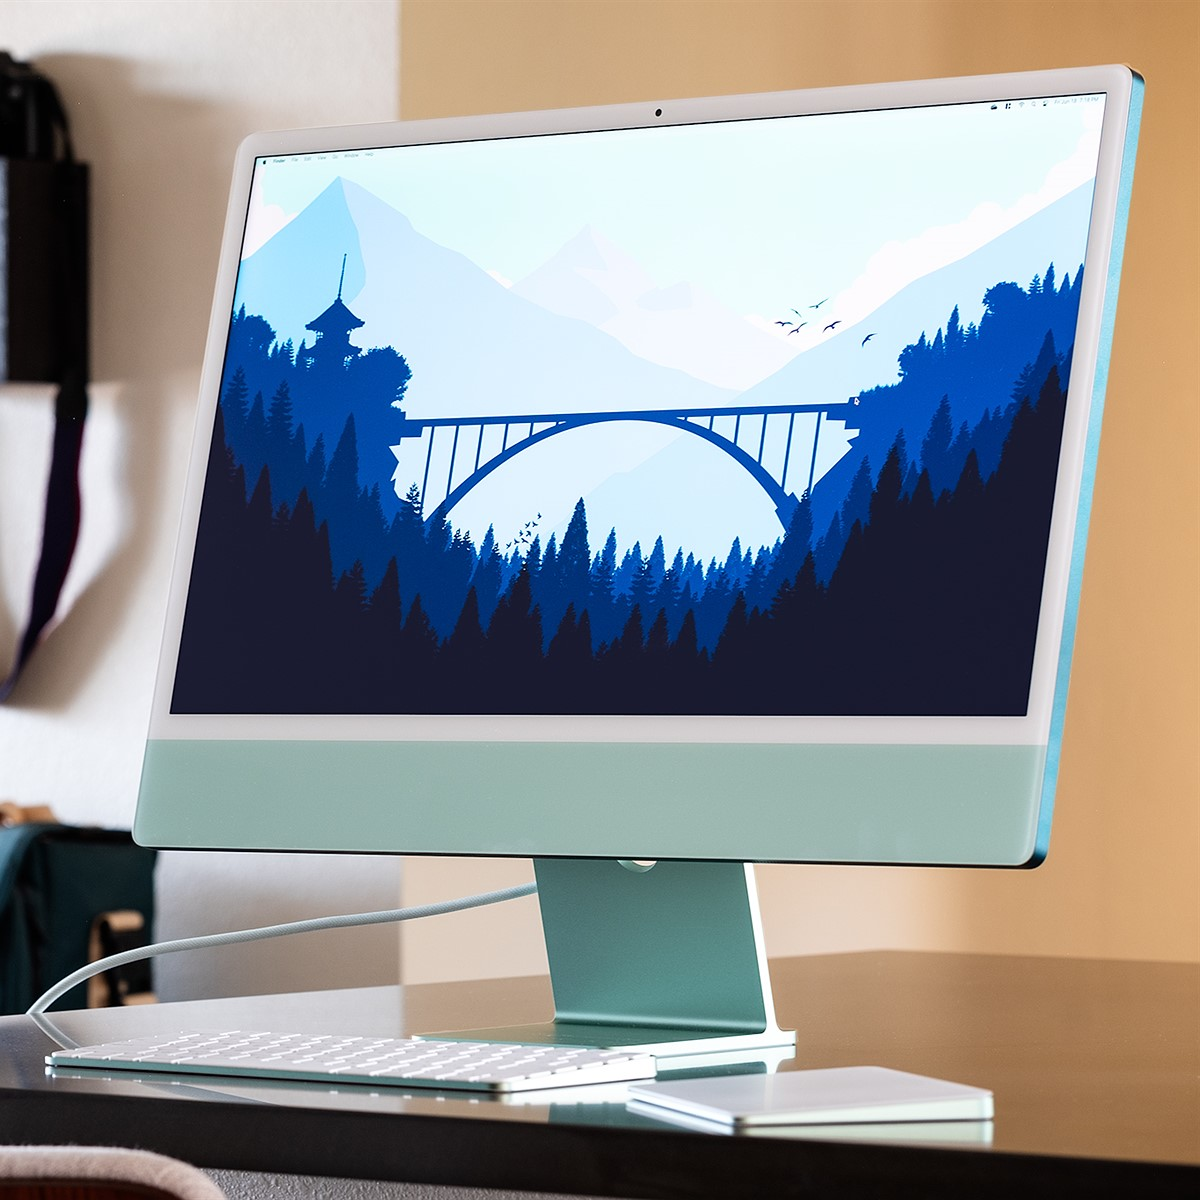 221 Apple M21 iMac 21 inch Review The best 'starter' Mac for ...